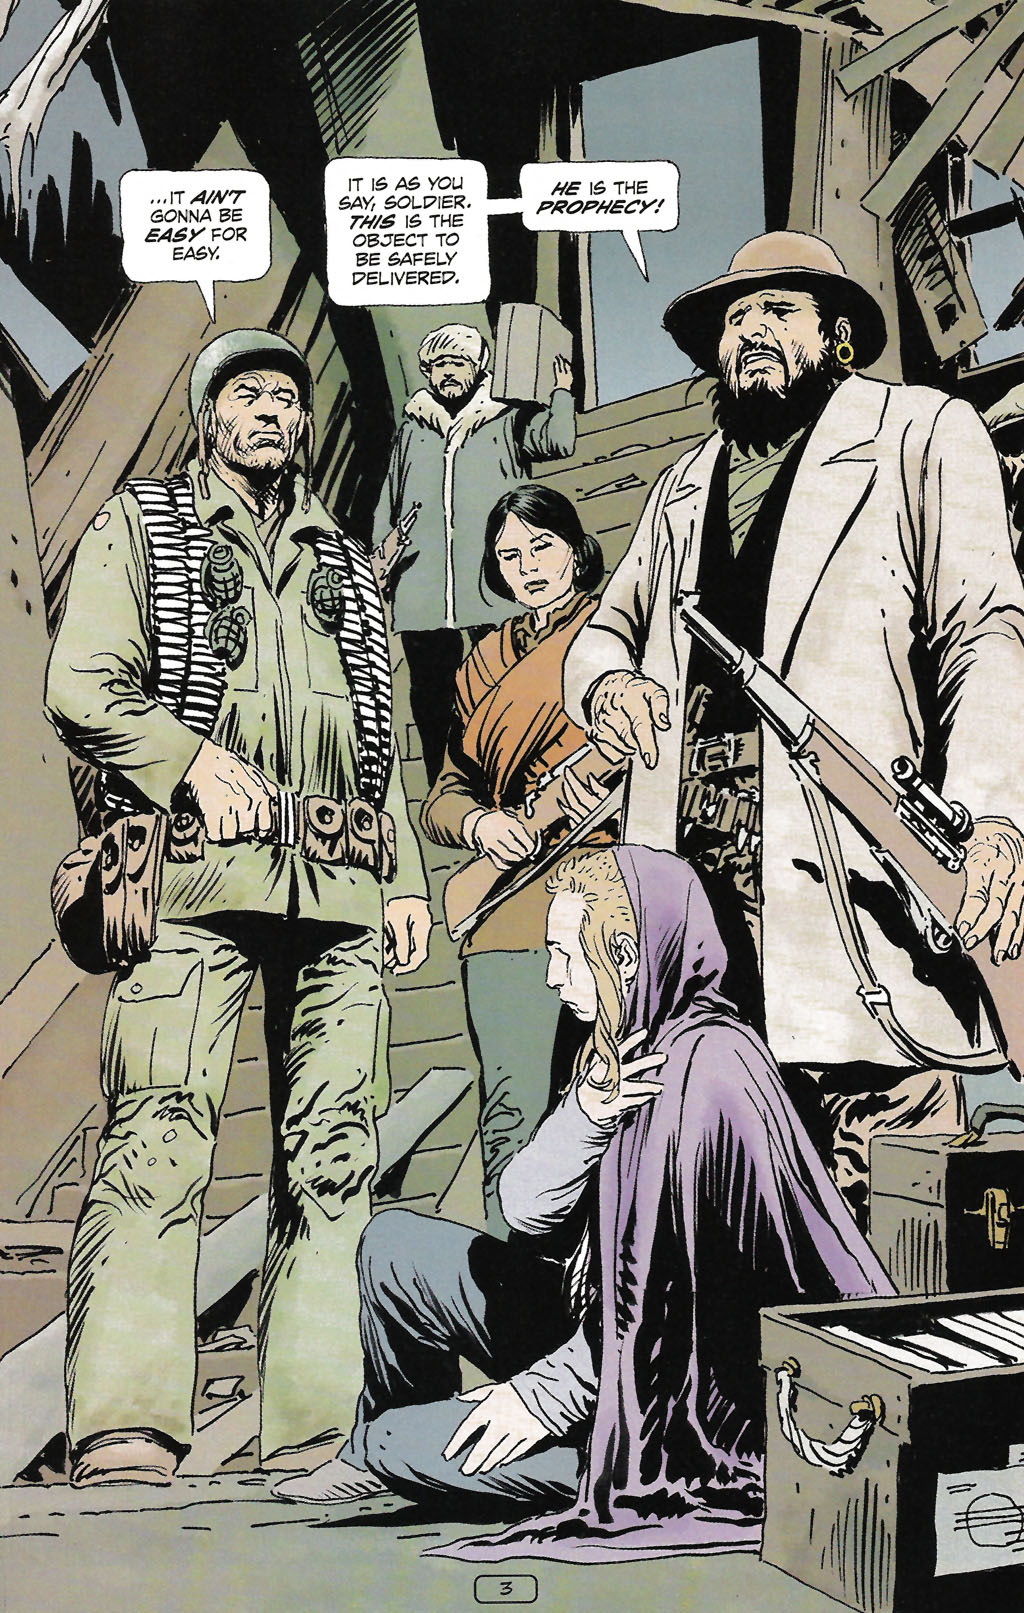 Read online Sgt. Rock: The Prophecy comic -  Issue #2 - 4